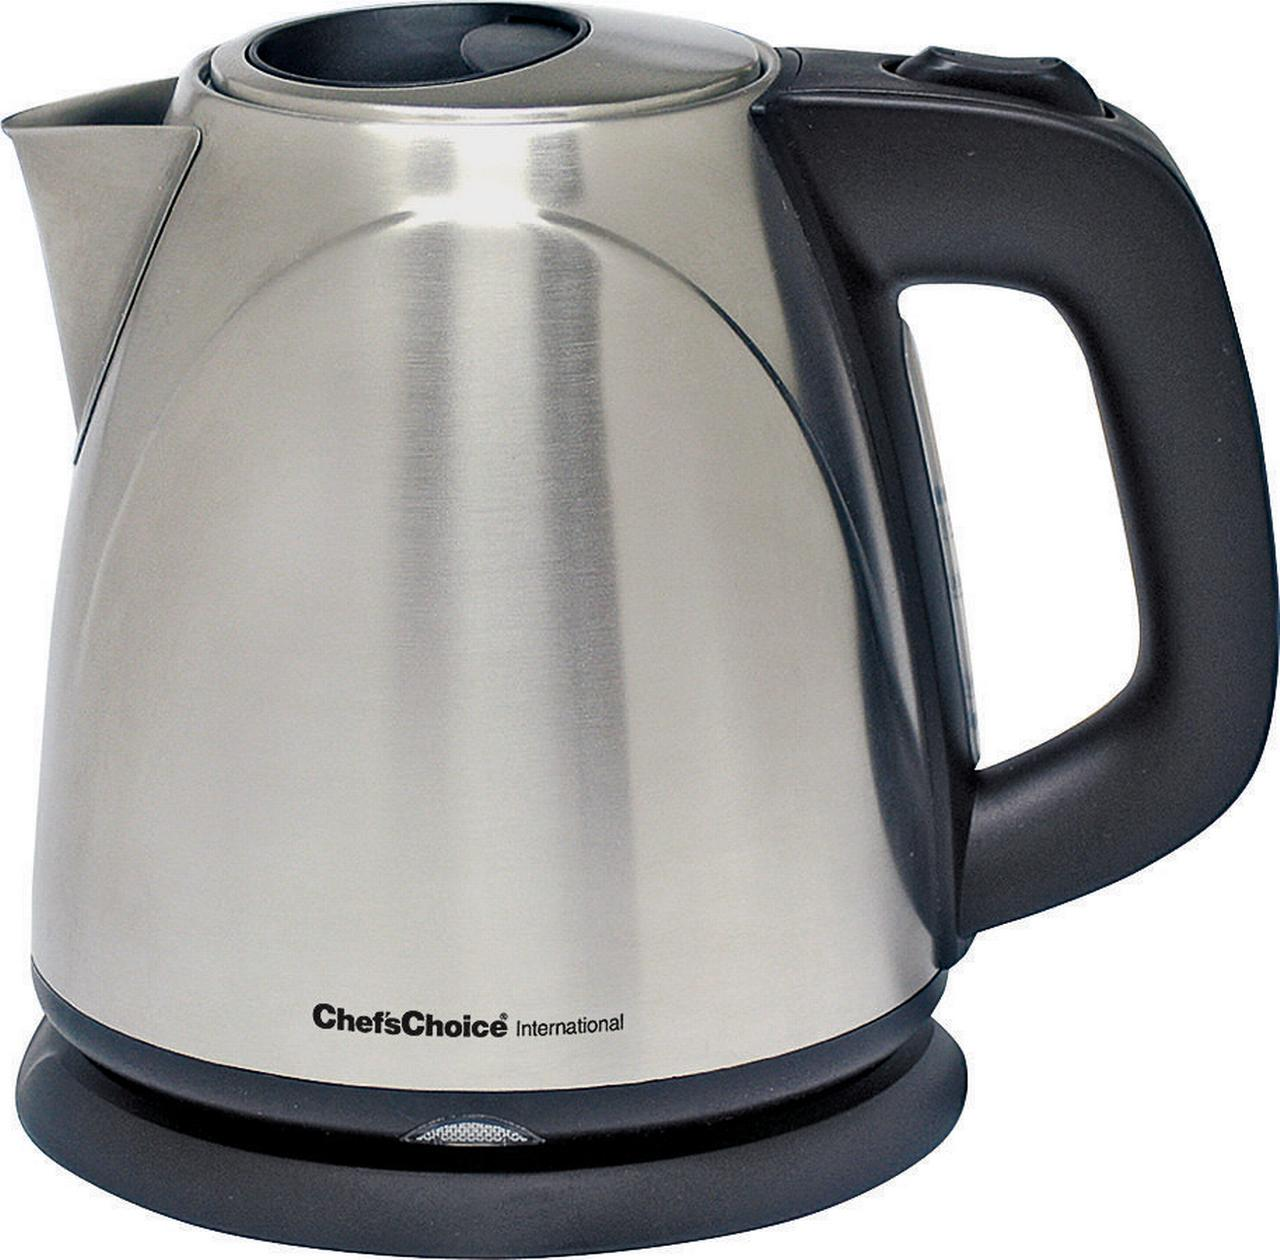 Chef'sChoice International Compact Cordless Electric Kettle, 120 VAC, 1500 W, Stainless Steel